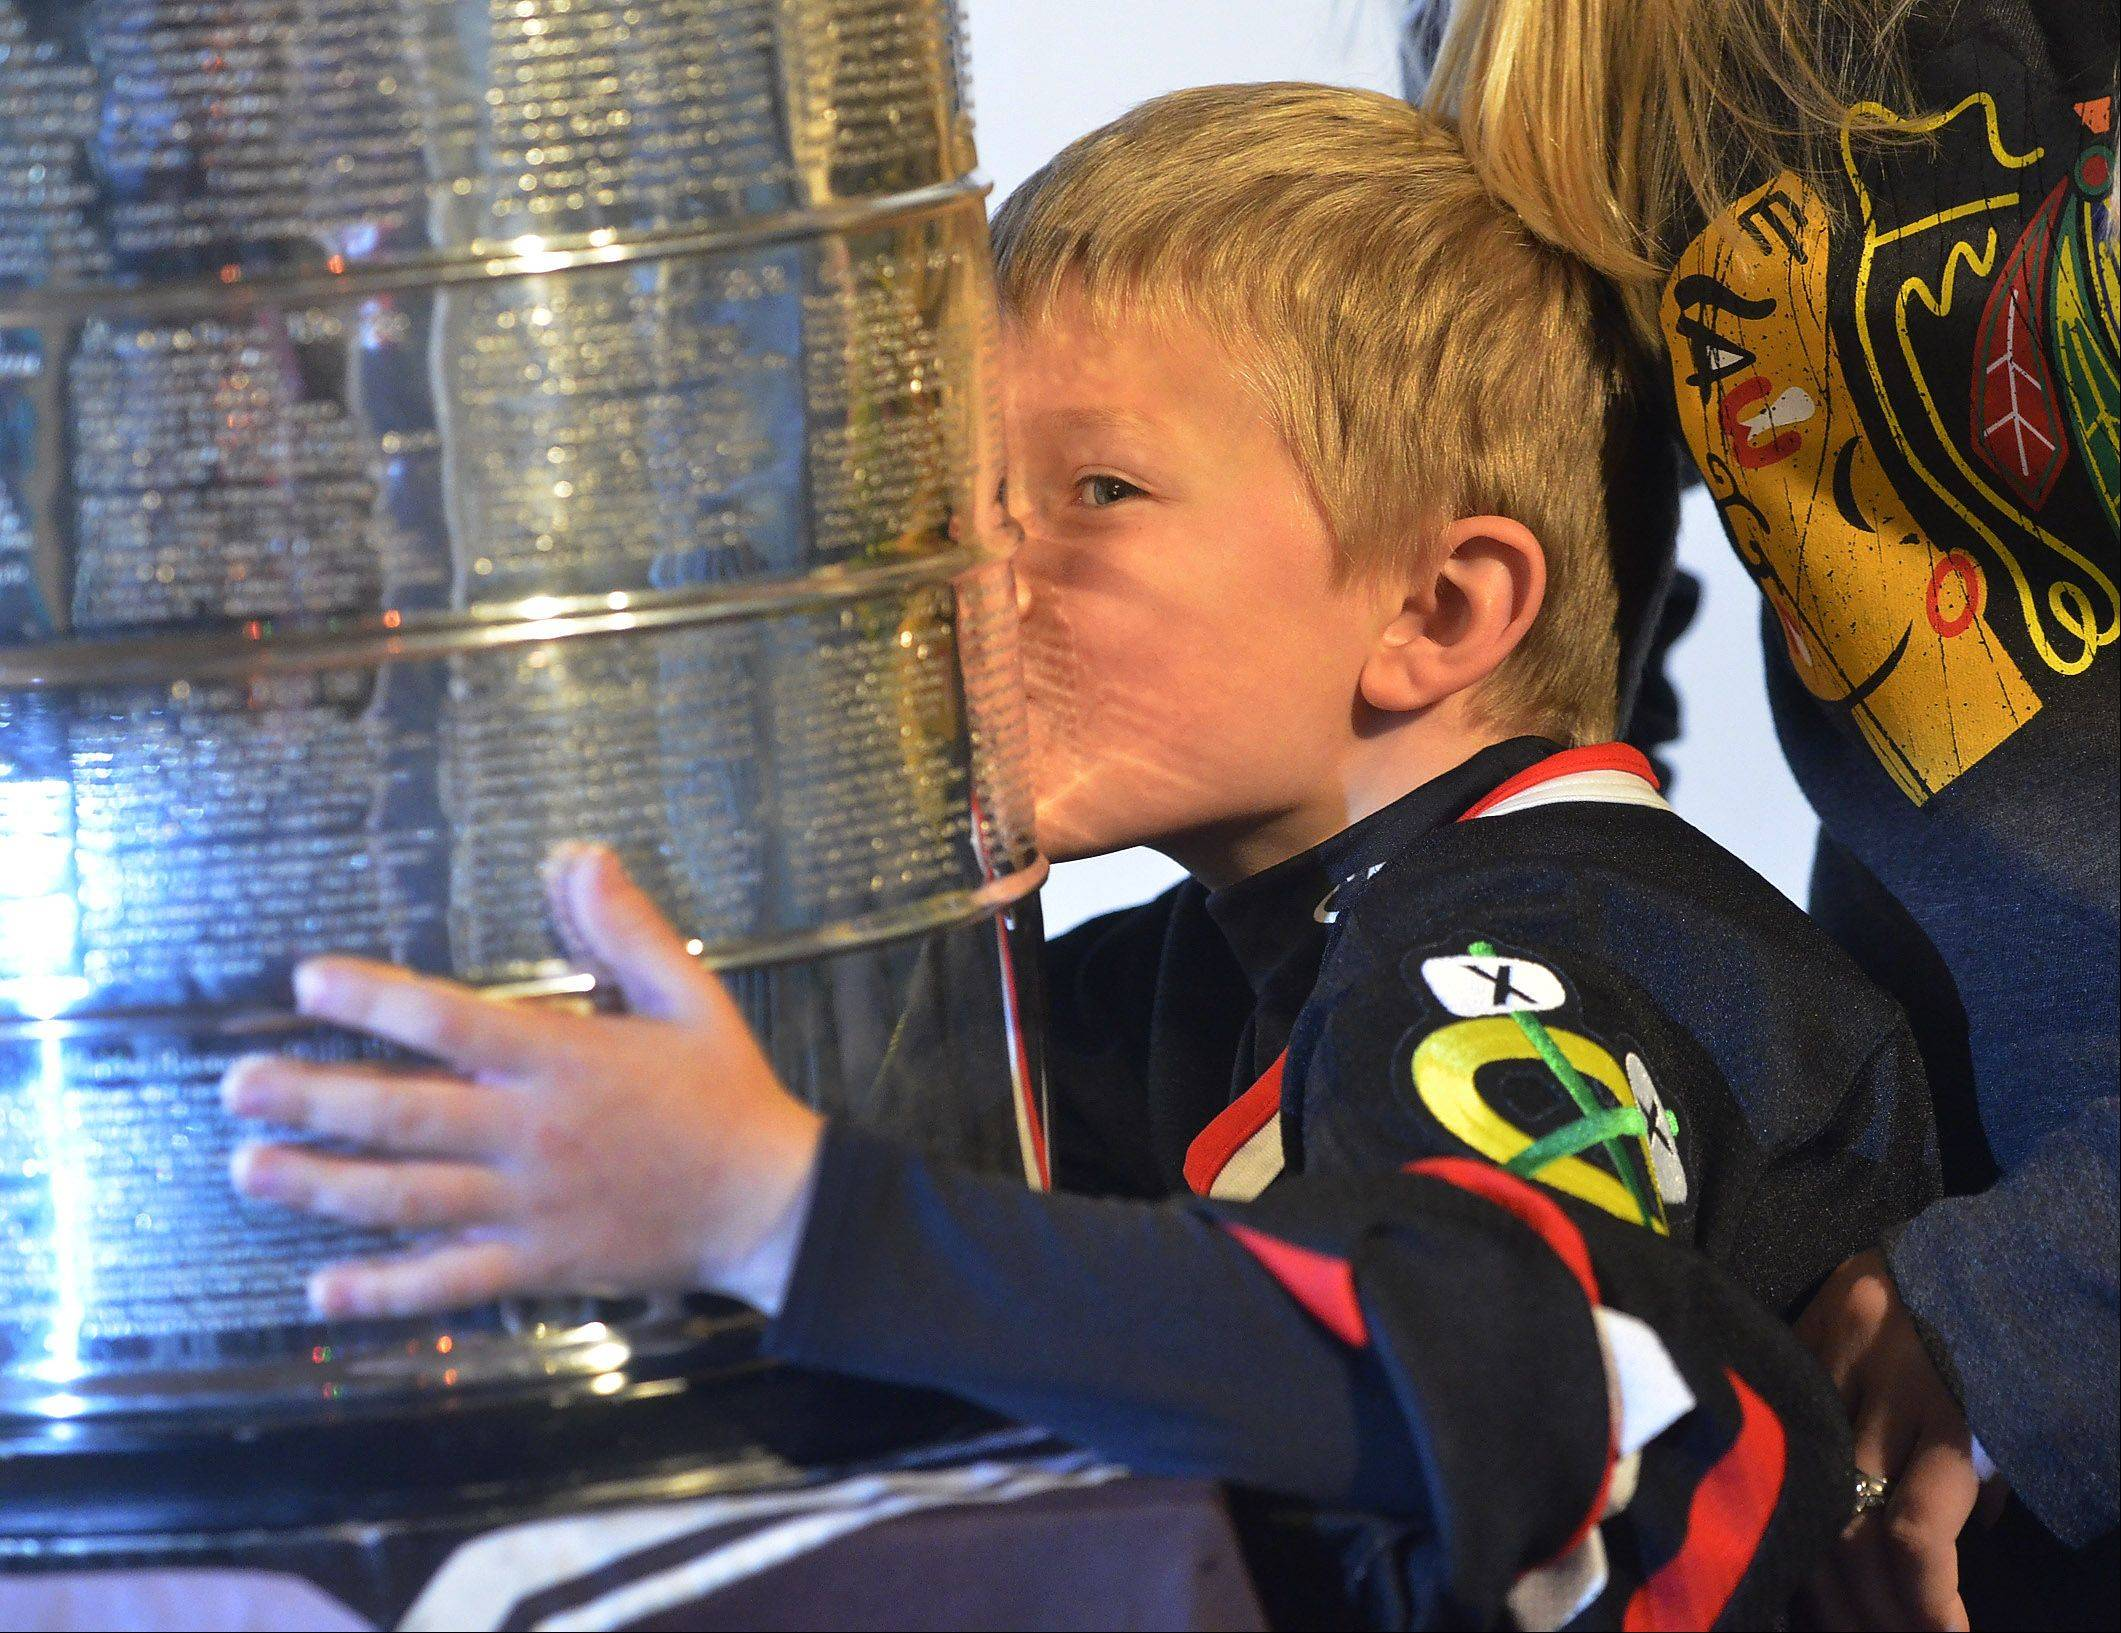 Jacob Thorby of Schaumburg gives a smooch to the Stanley Cup, which was on display at the Trickster Art Gallery in Schaumburg Saturday.